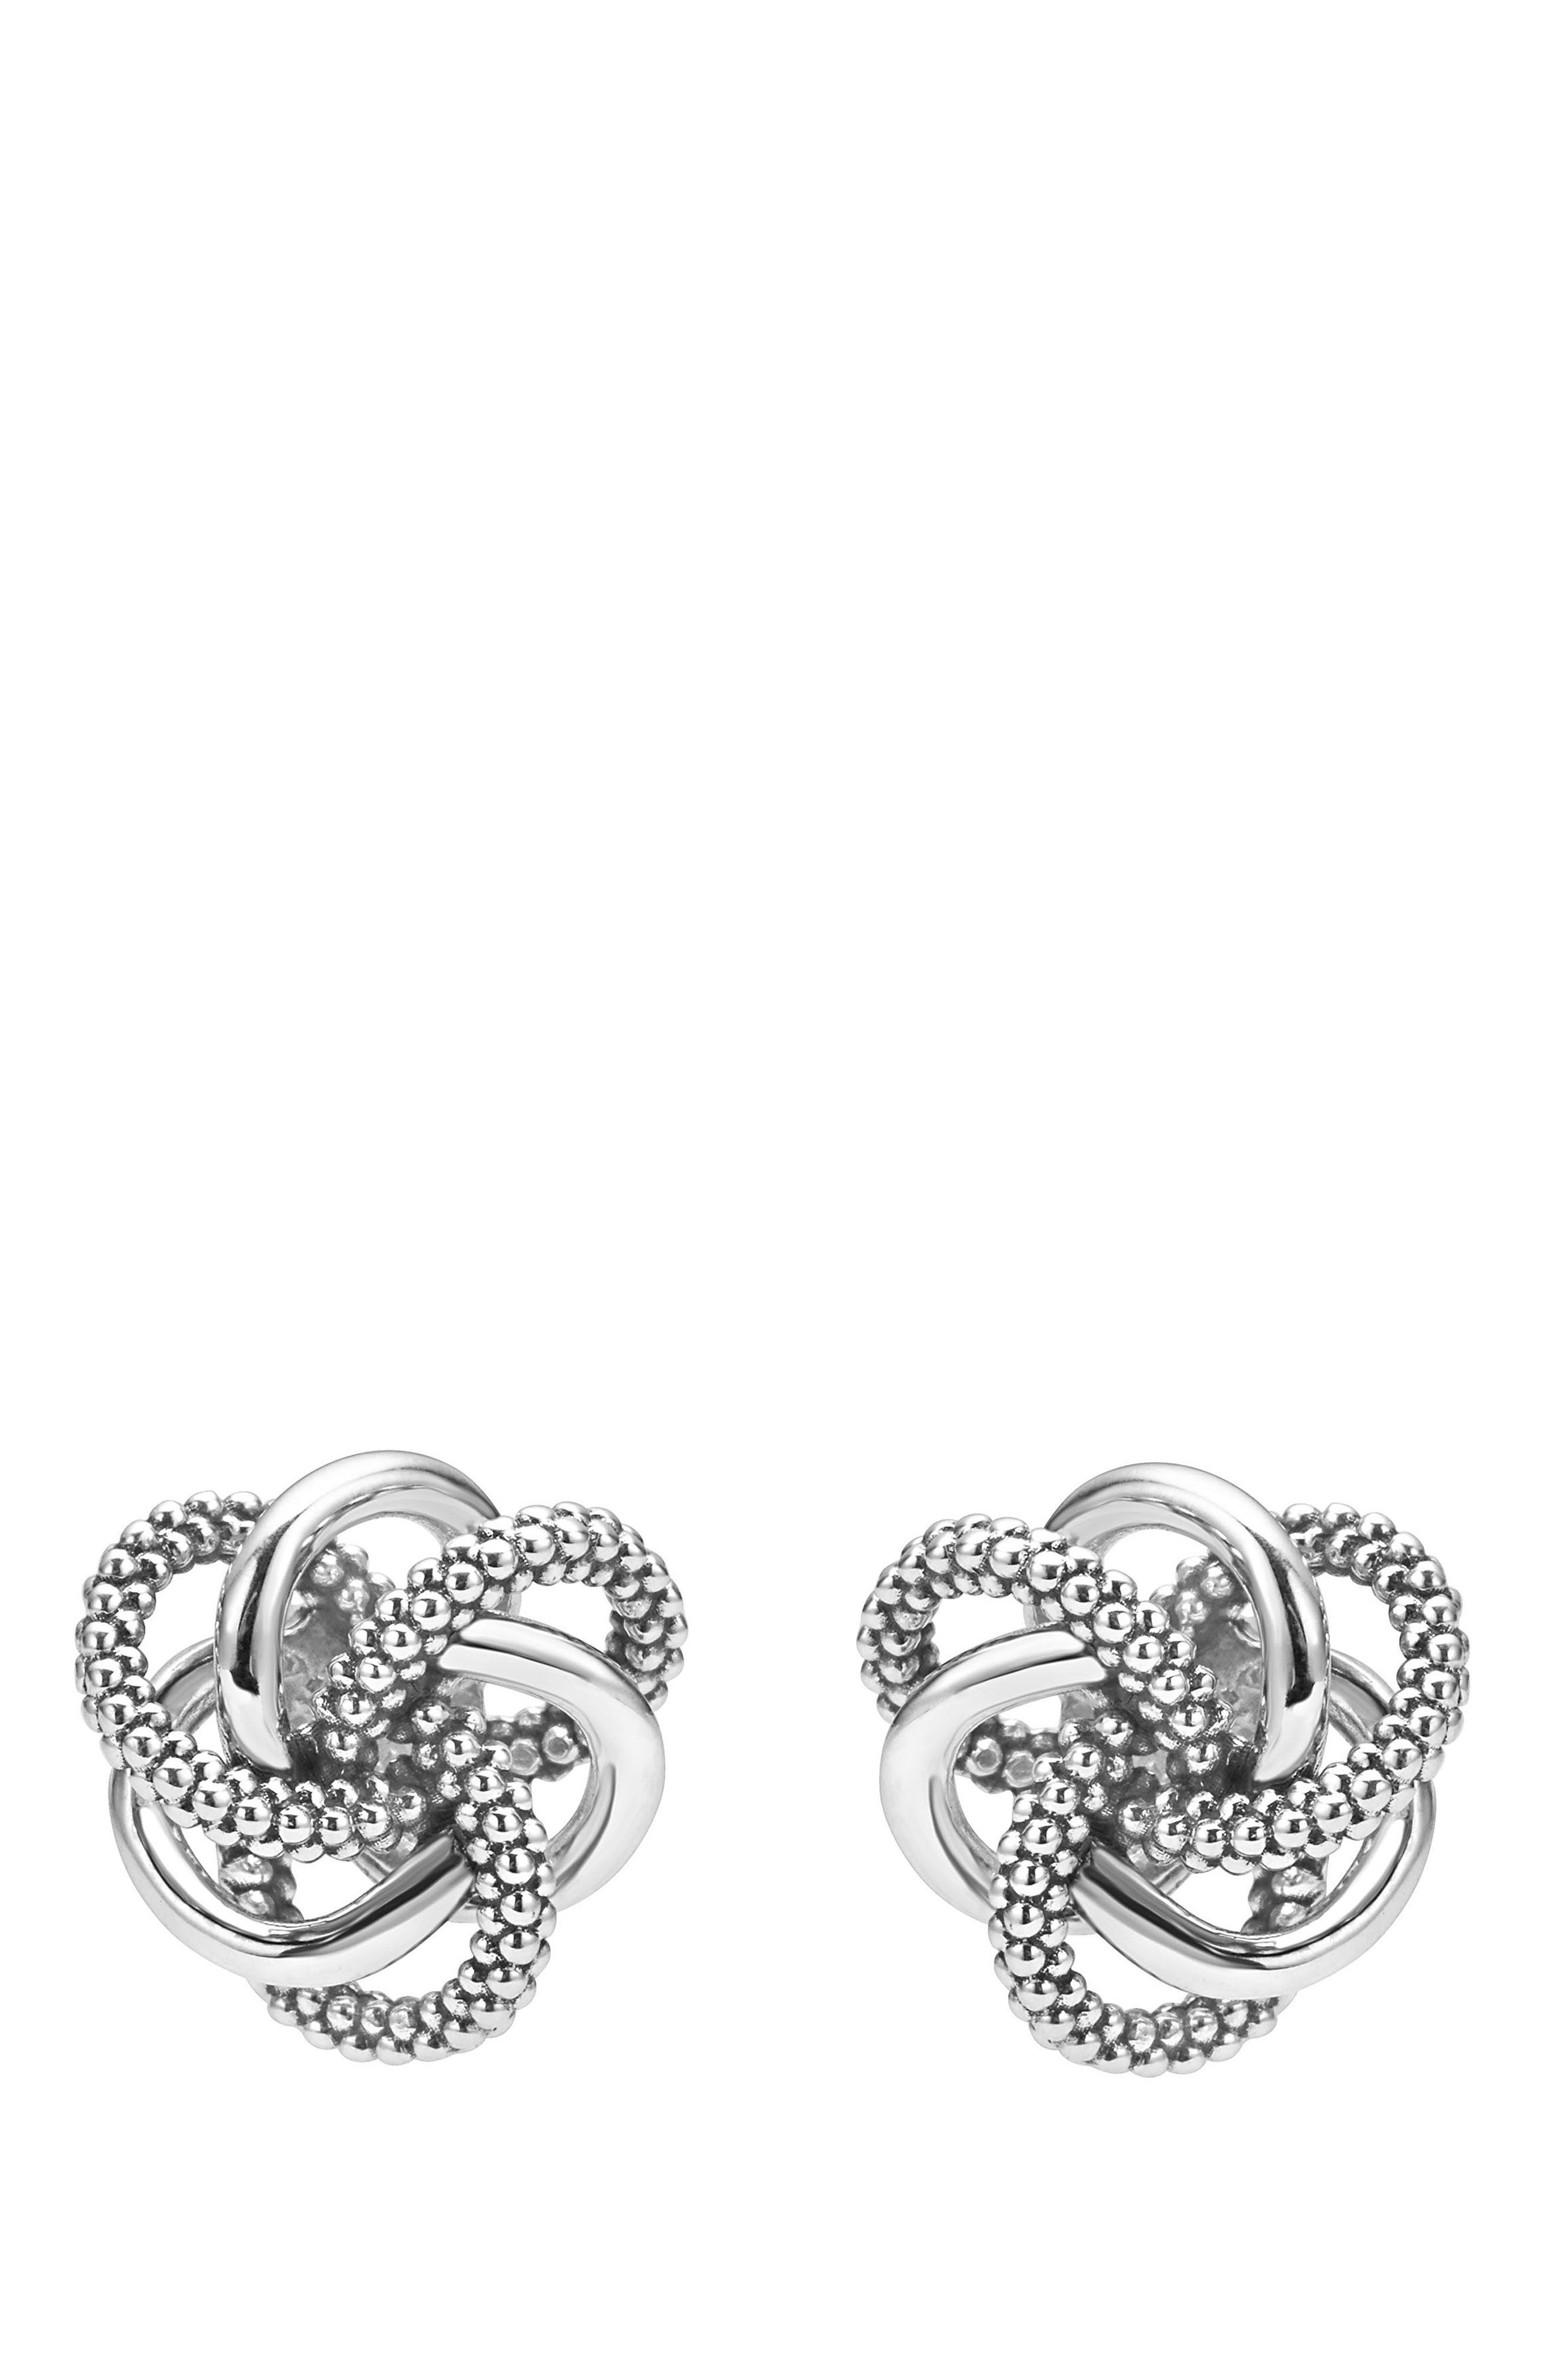 LAGOS, 'Love Knot' Sterling Silver Stud Earrings, Main thumbnail 1, color, STERLING SILVER